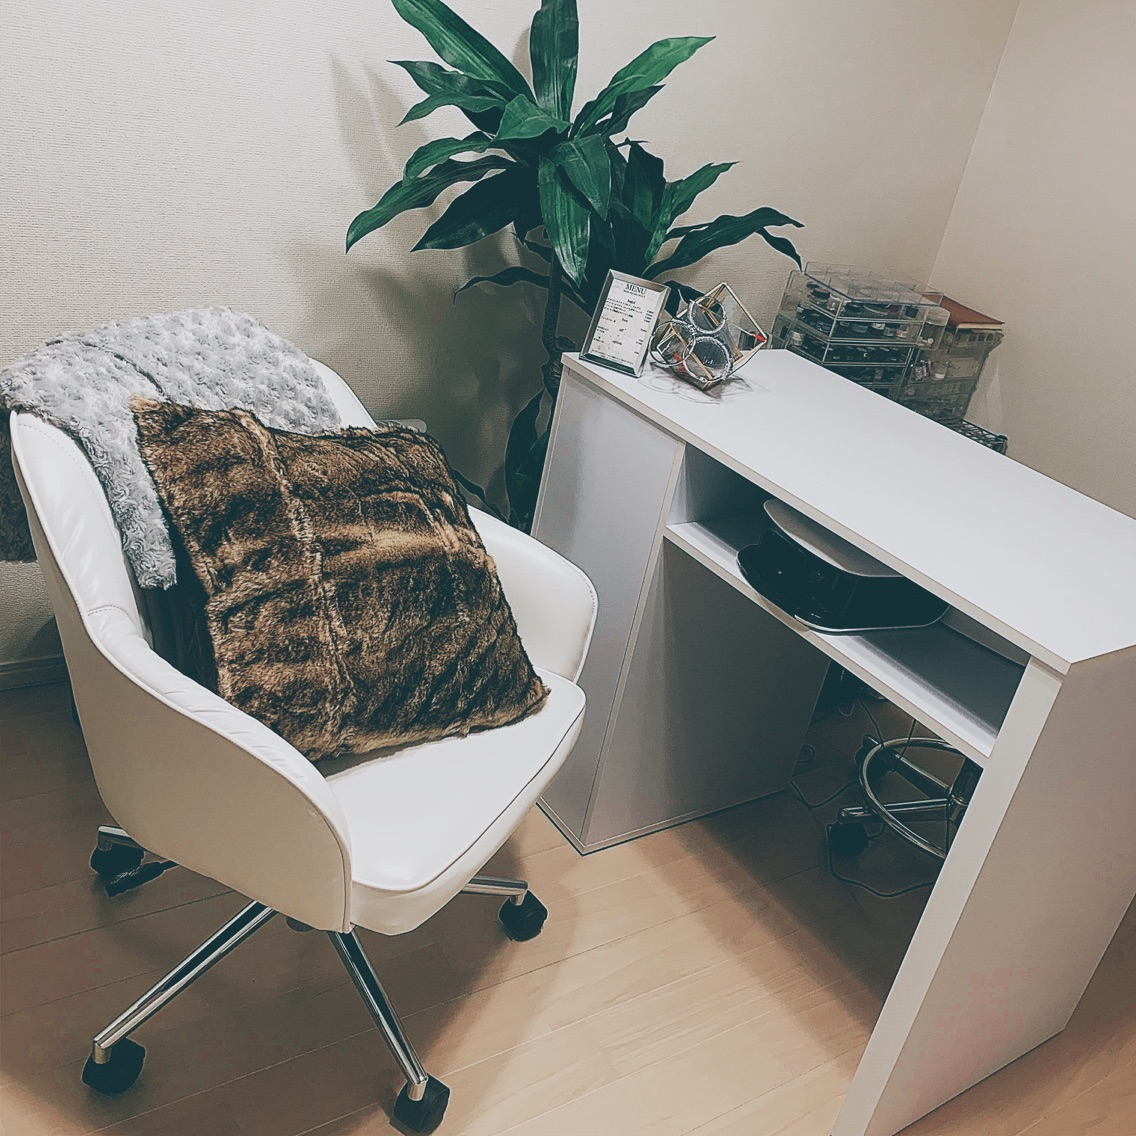 private nailsalonSELECT